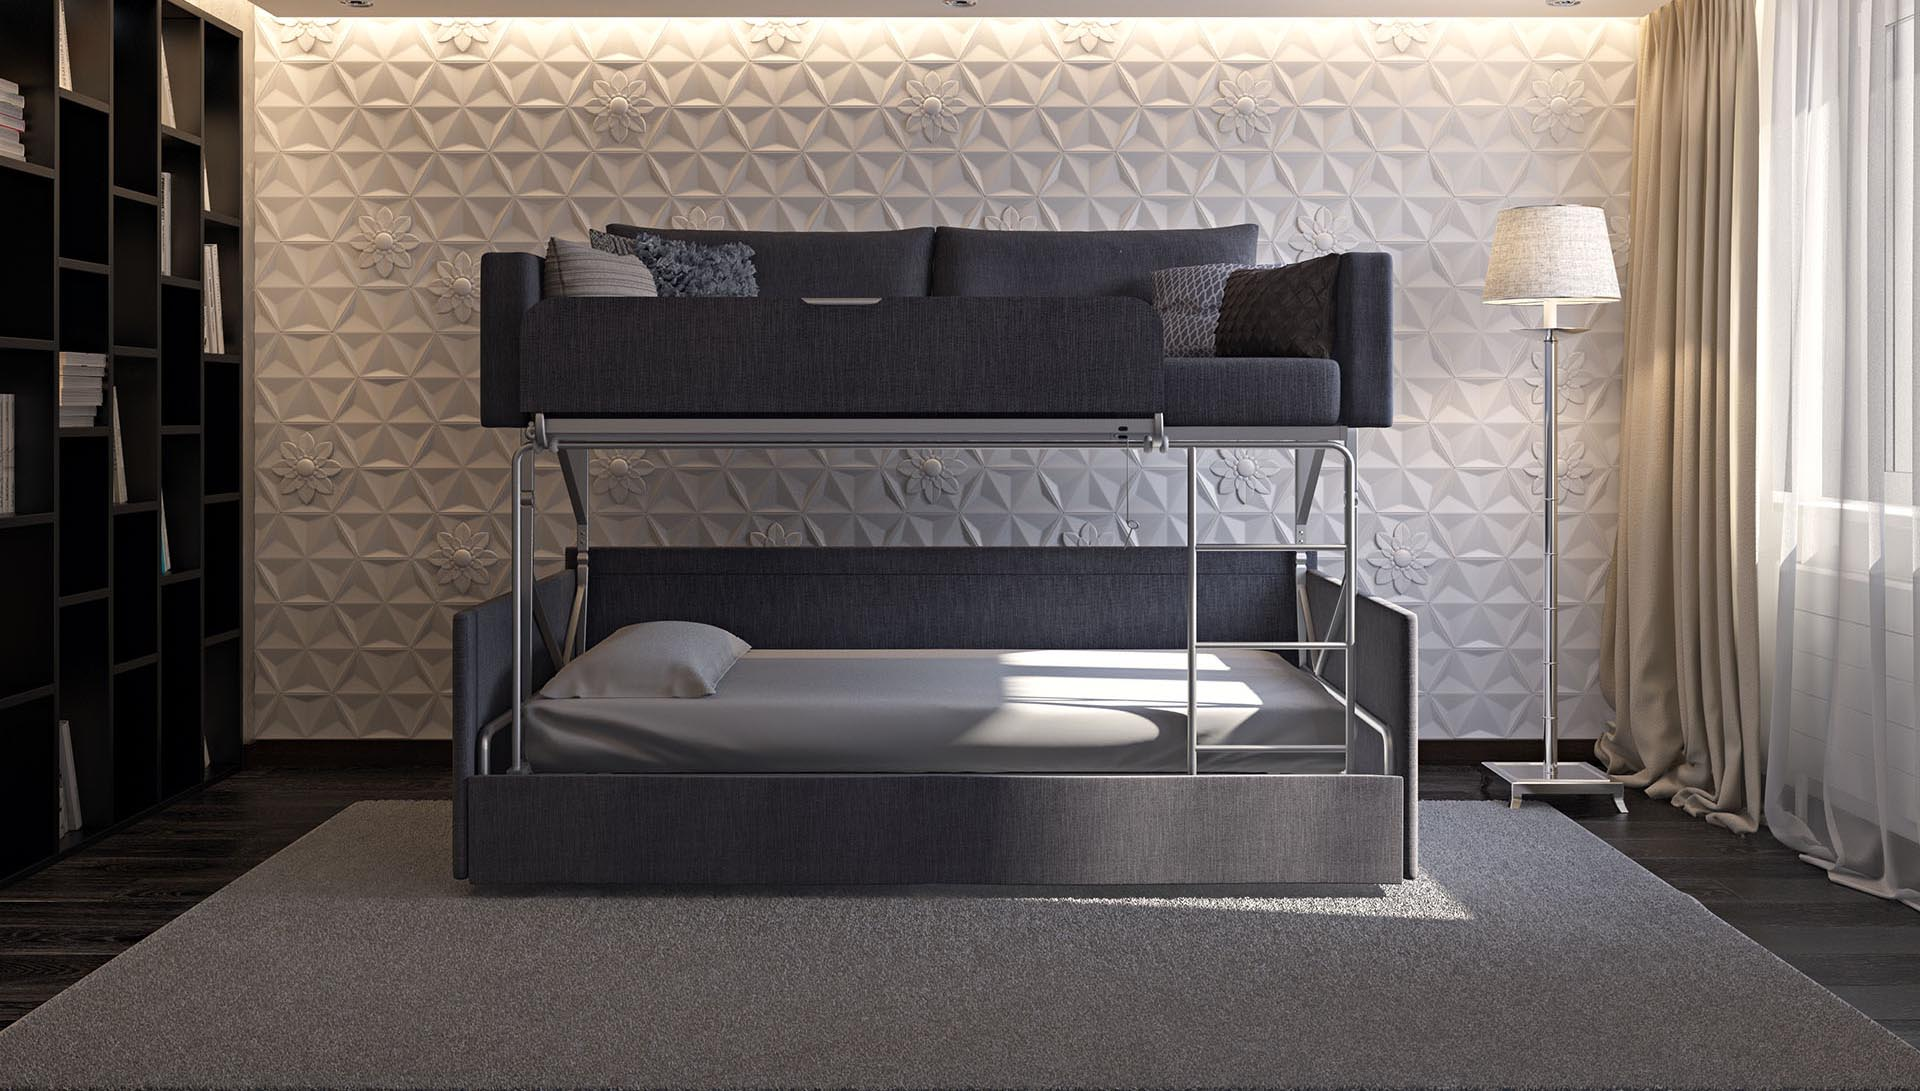 Fabulous This Sofa Converts To A Bunk Bed Small Space Dwellers Gmtry Best Dining Table And Chair Ideas Images Gmtryco